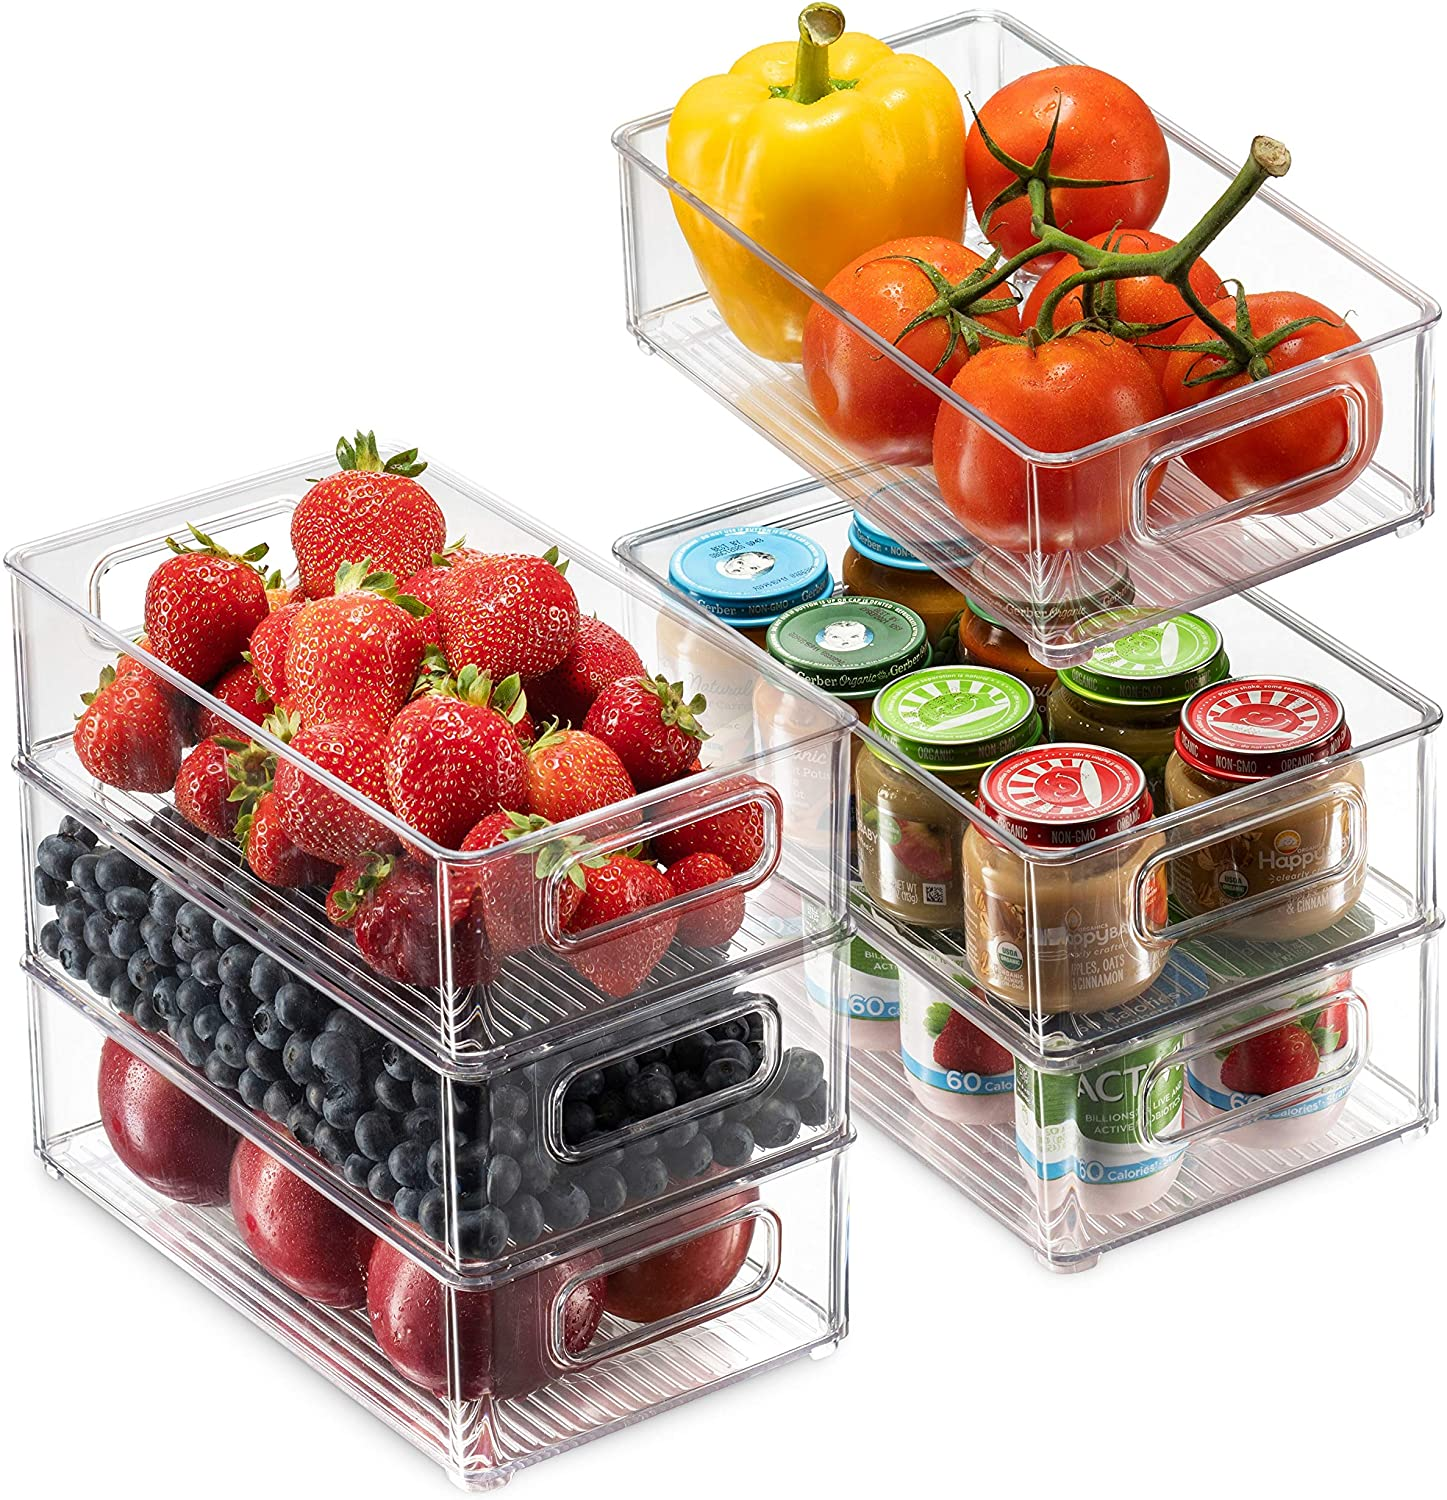 Set Of 6 Refrigerator Organizer Bins - Stackable Fridge Organizers with Cutout Handles for Freezer, Kitchen, Countertops, Cabinets - Clear Plastic Pantry Food Storage Rack: Kitchen & Dining